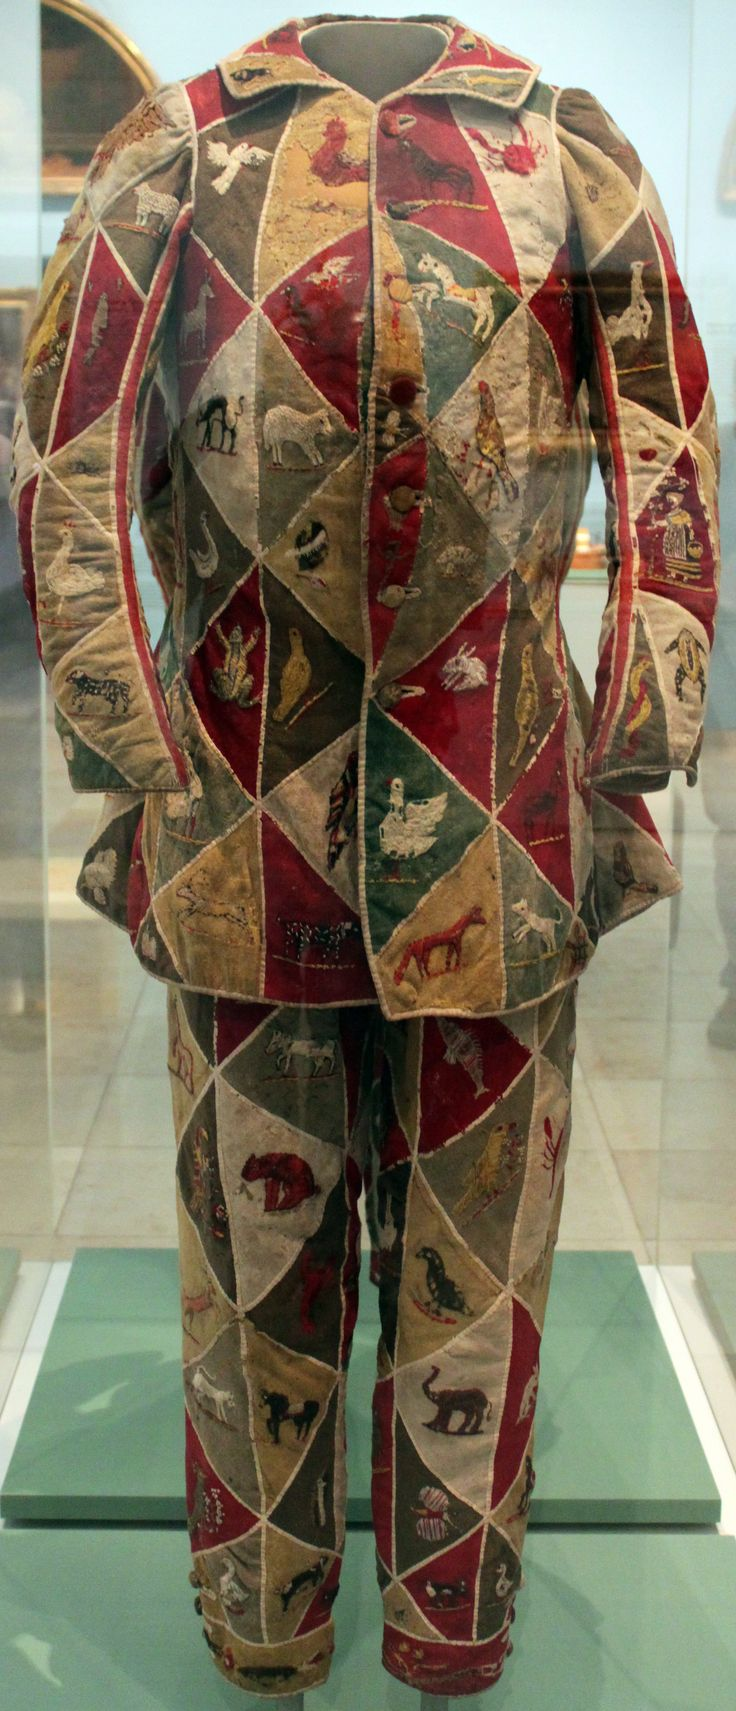 Costume of a Harlequin, 18th Century; Germanic National Museum in Nuremberg